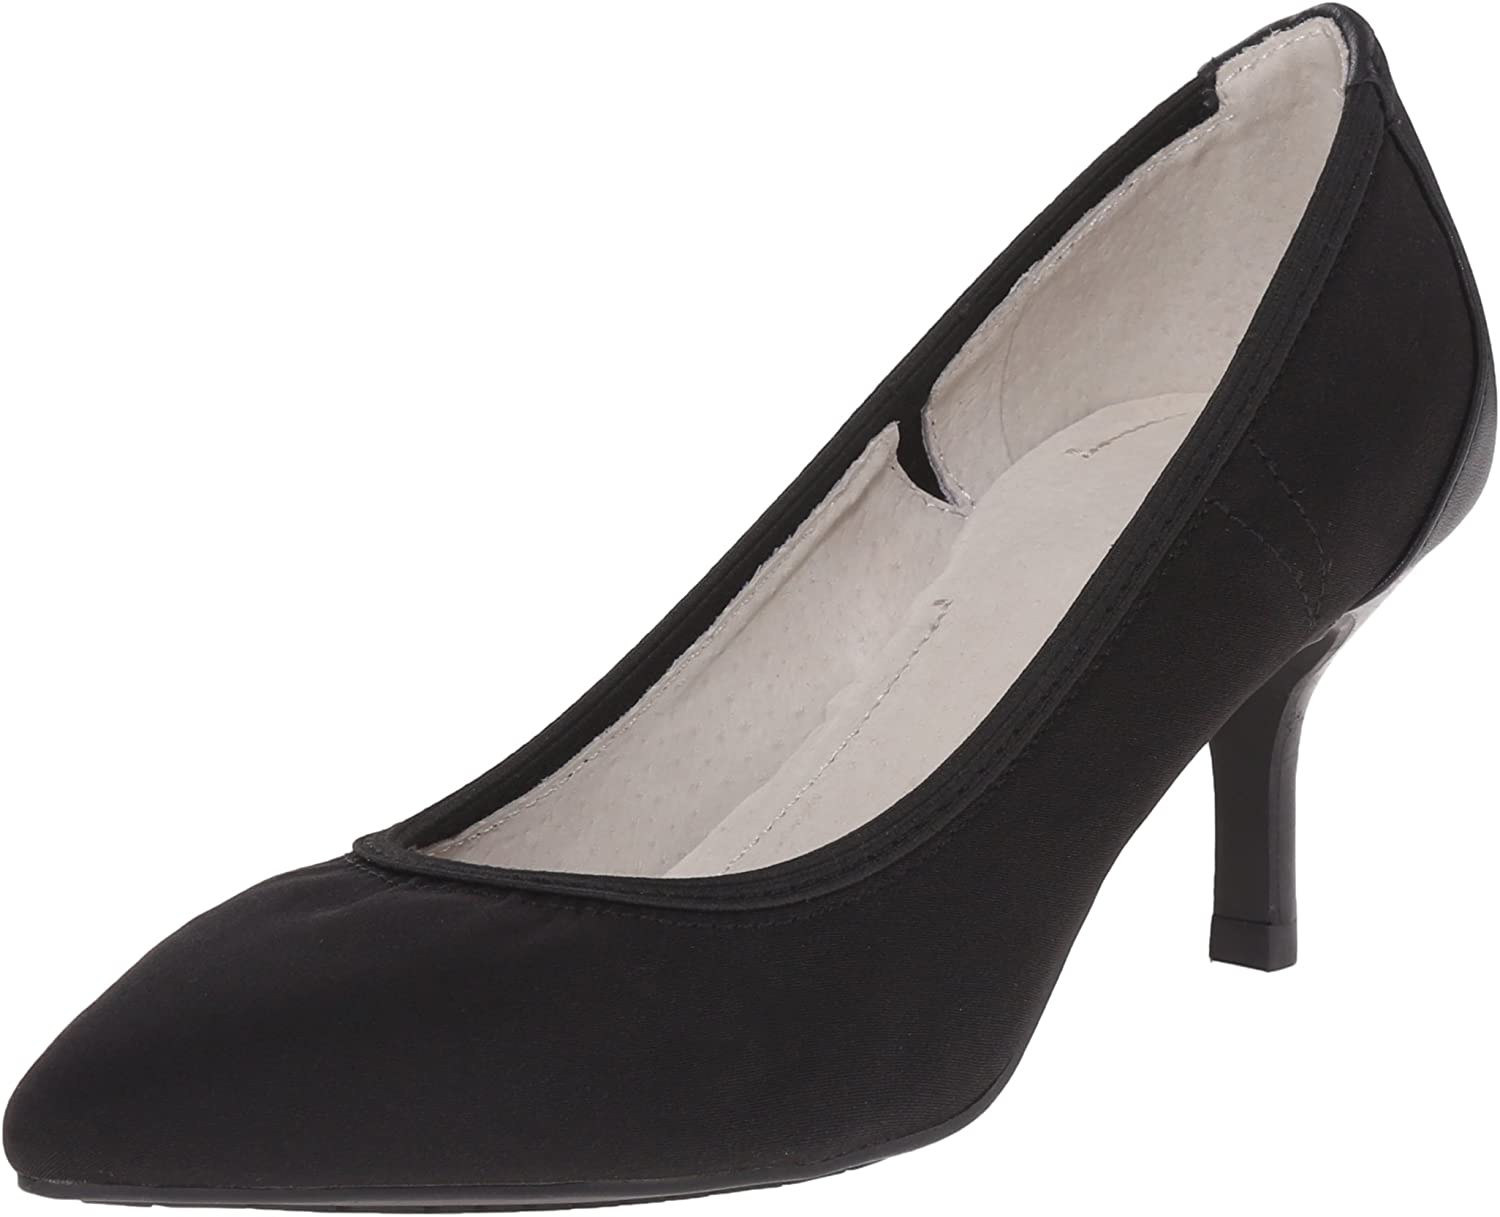 Tahari Women's Toby Dress Pump